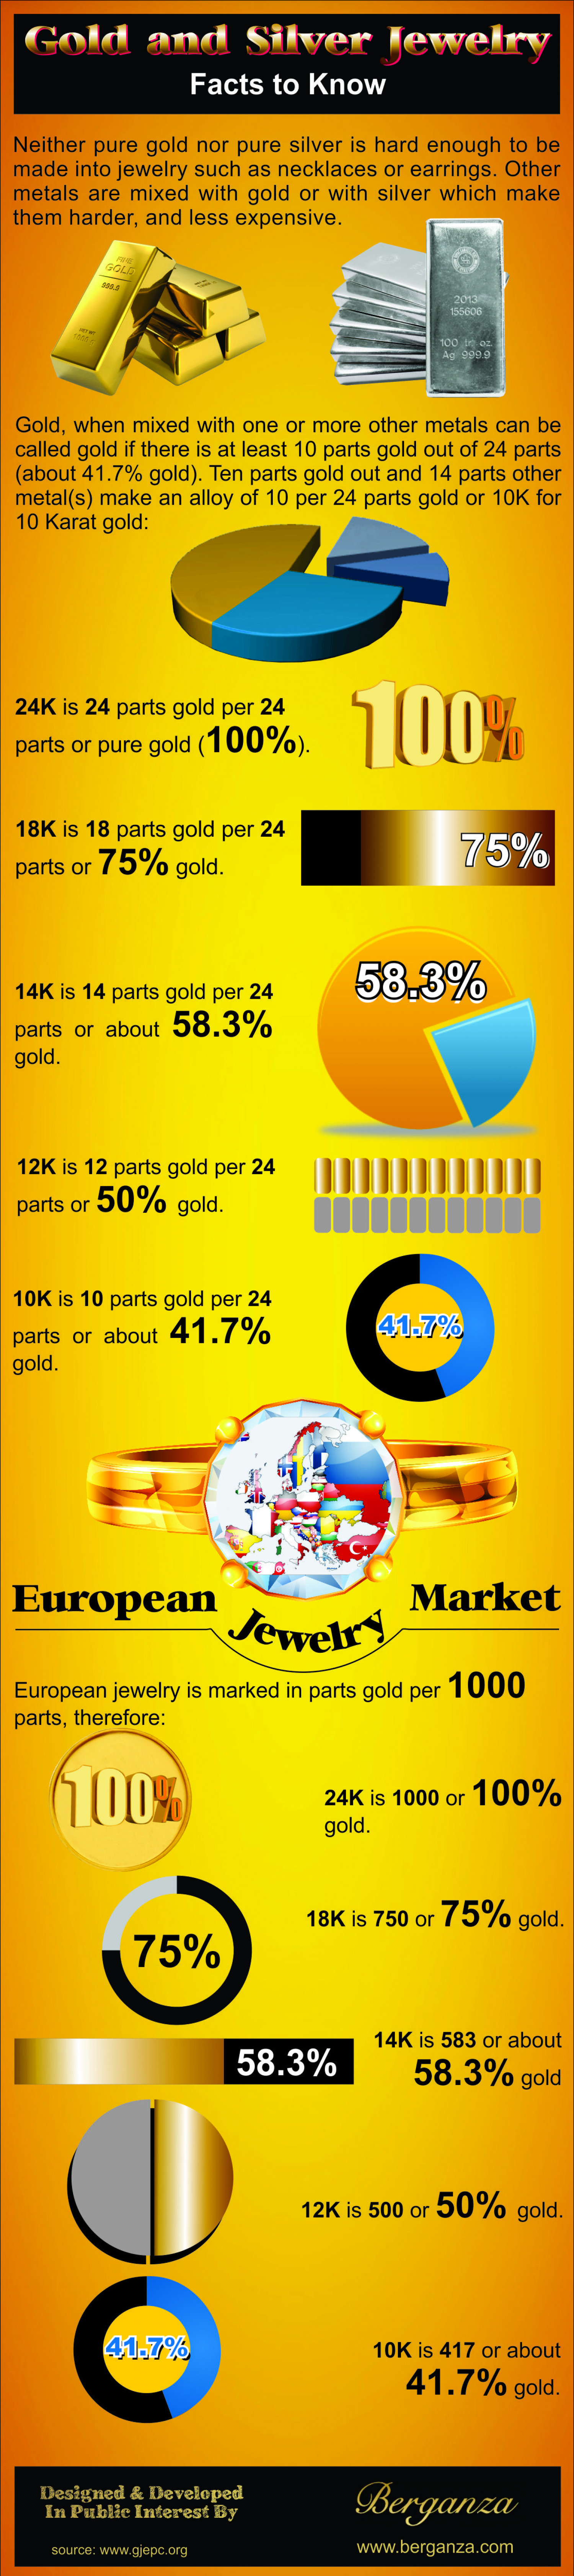 Gold and Silver Jewelry: Facts to Know Infographic